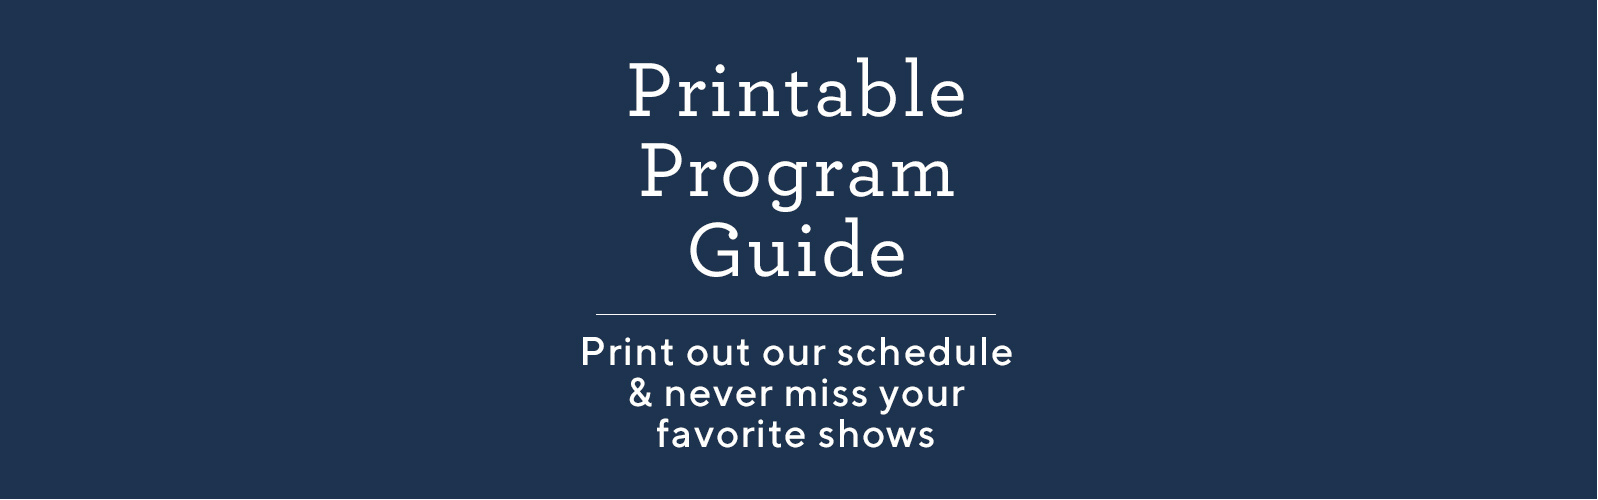 Printable Program Guide  Print out our schedule & never miss your favorite shows